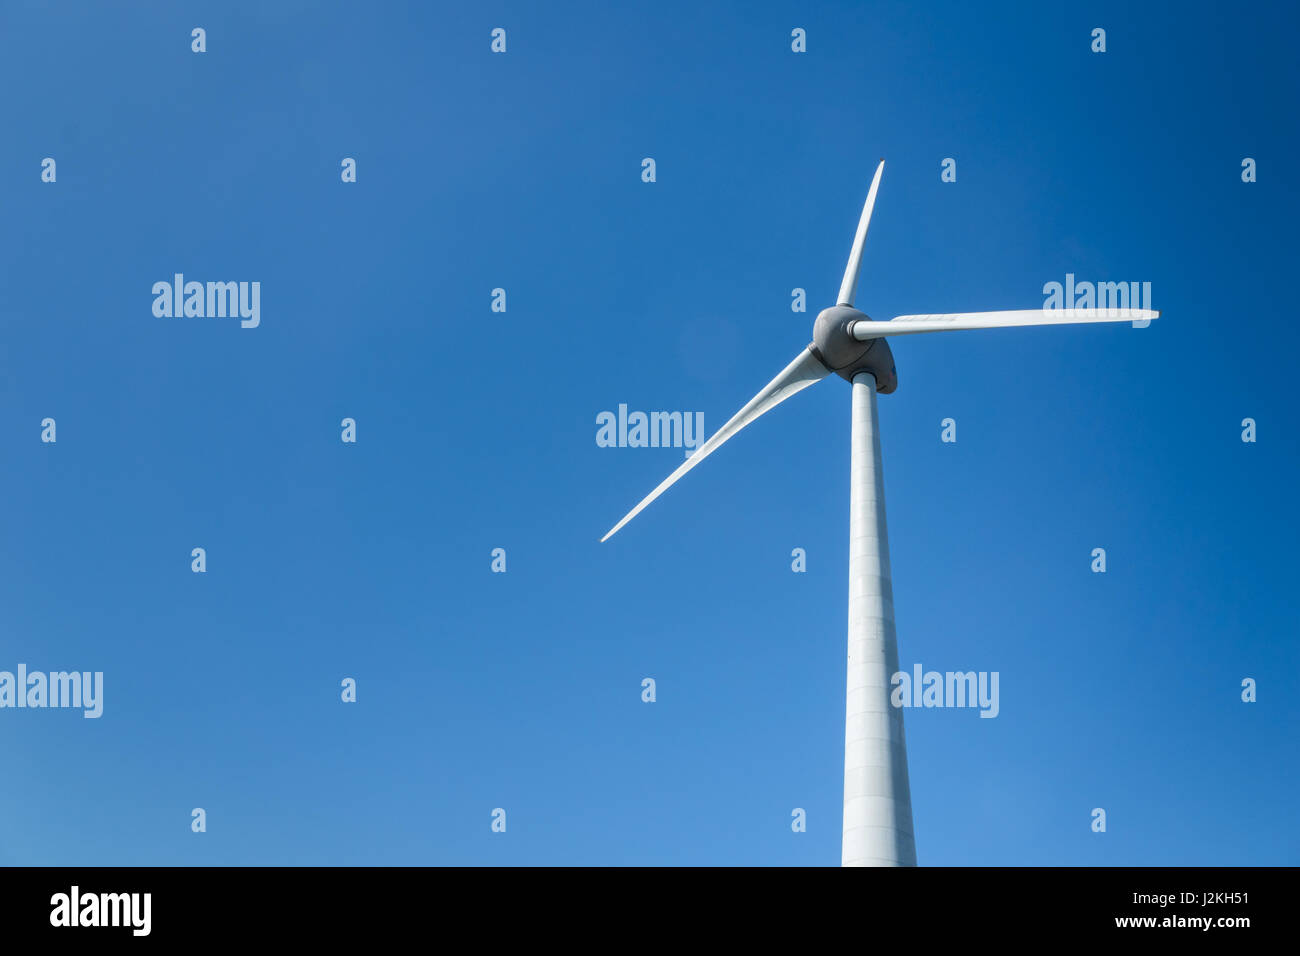 wind energy turbine / modern wind mill against blue sky background Stock Photo